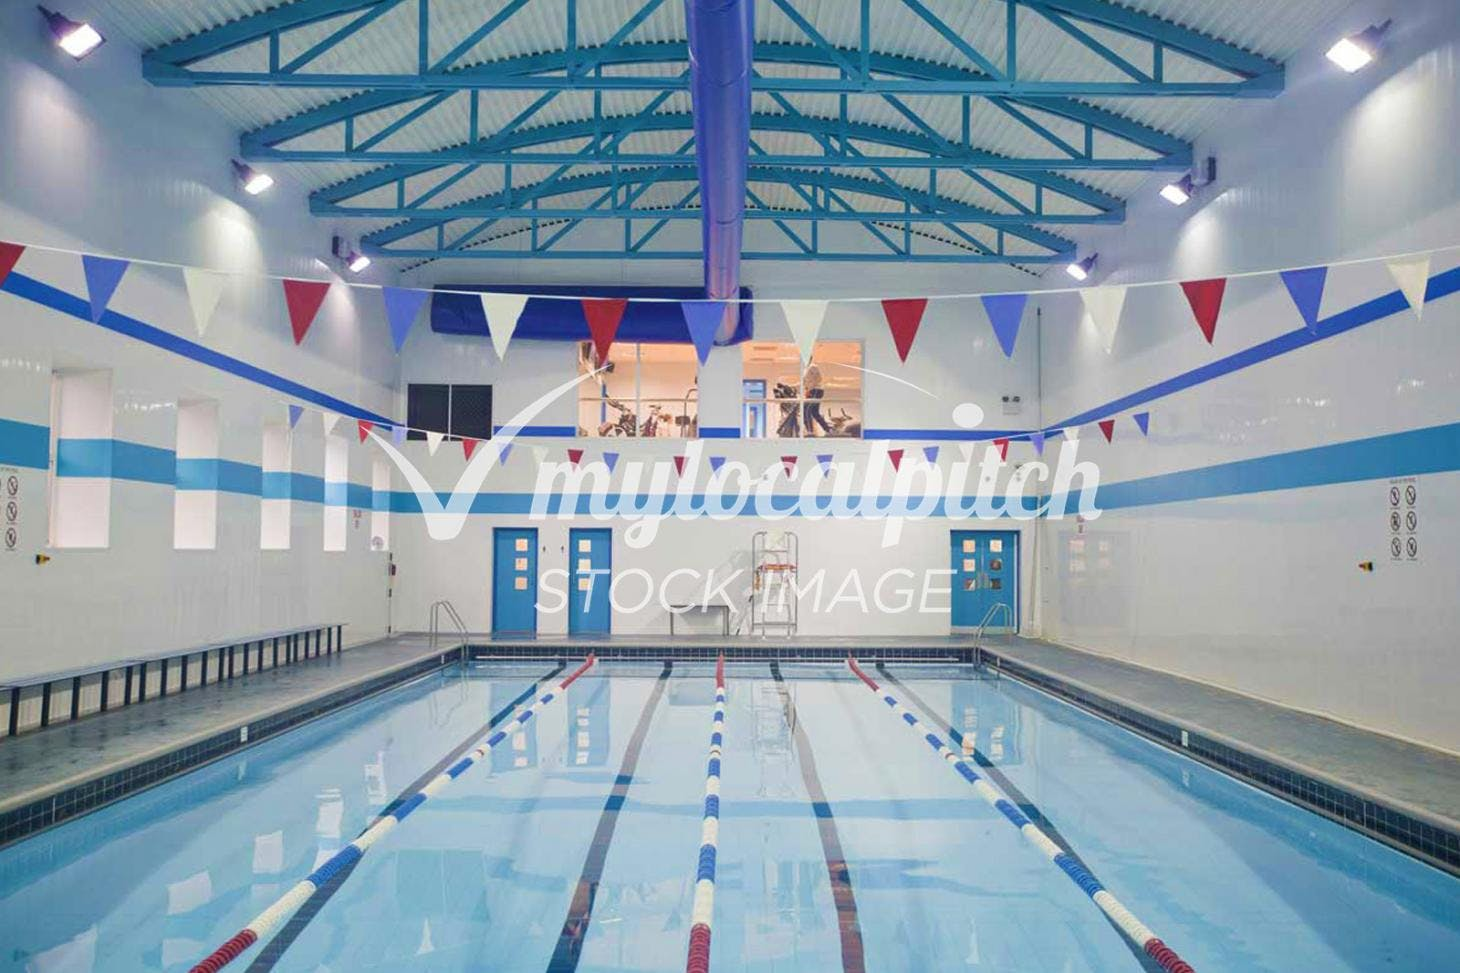 Nuffield Health Wellbeing Centre Indoor swimming pool